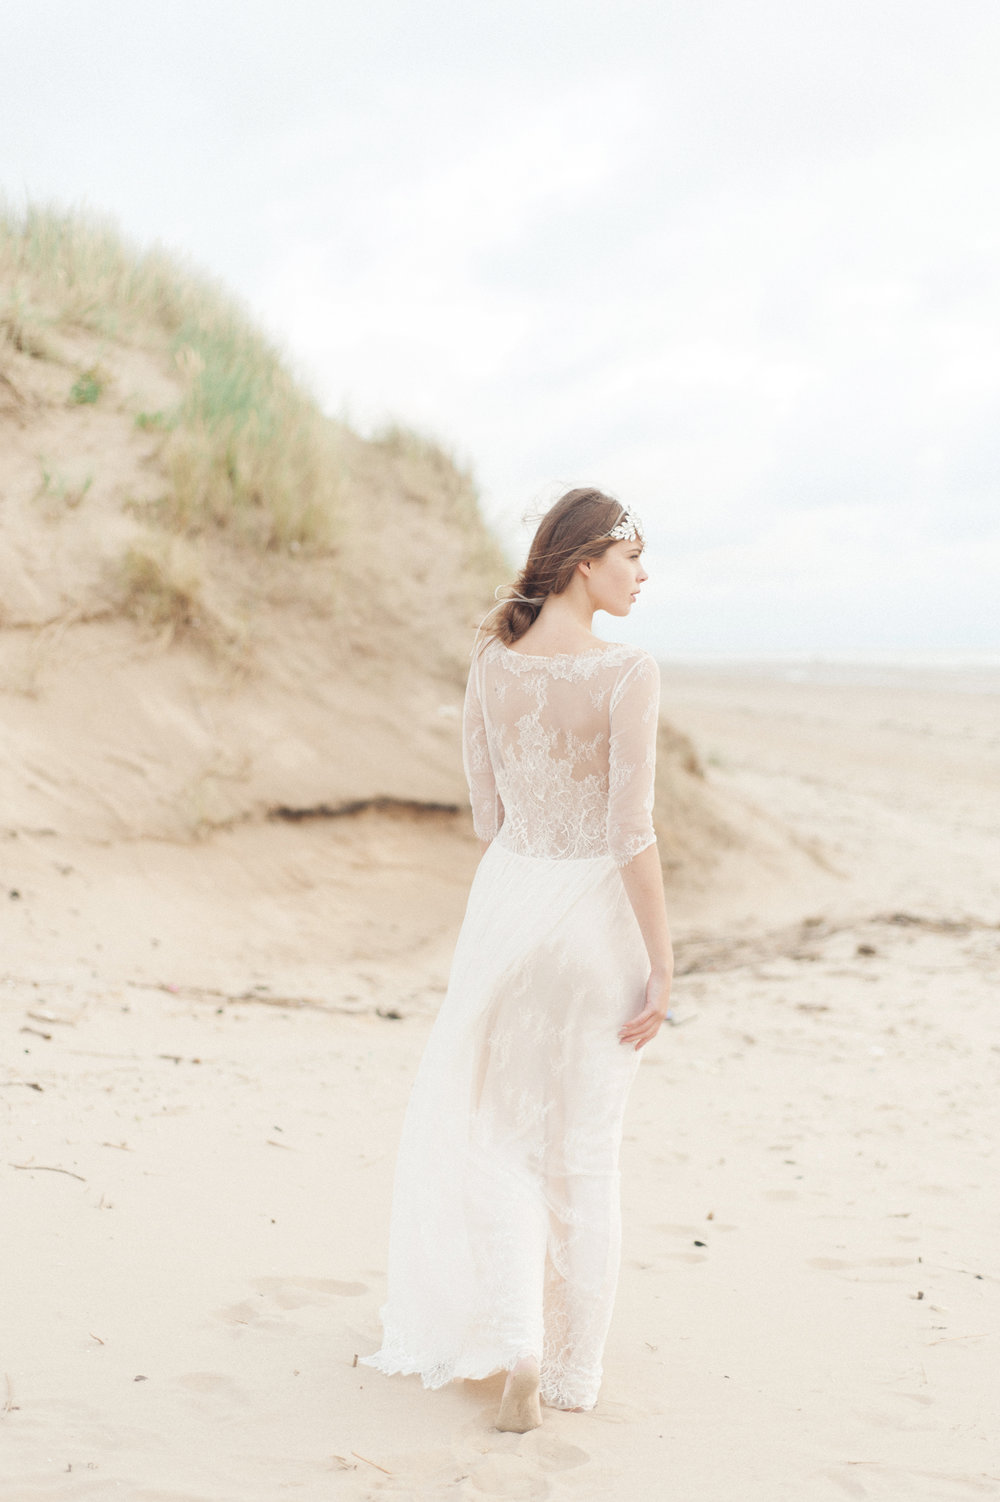 Kate-Beaumont-Wedding-Dresses-Formby-Beach-Emma-Pilkington-33.jpg